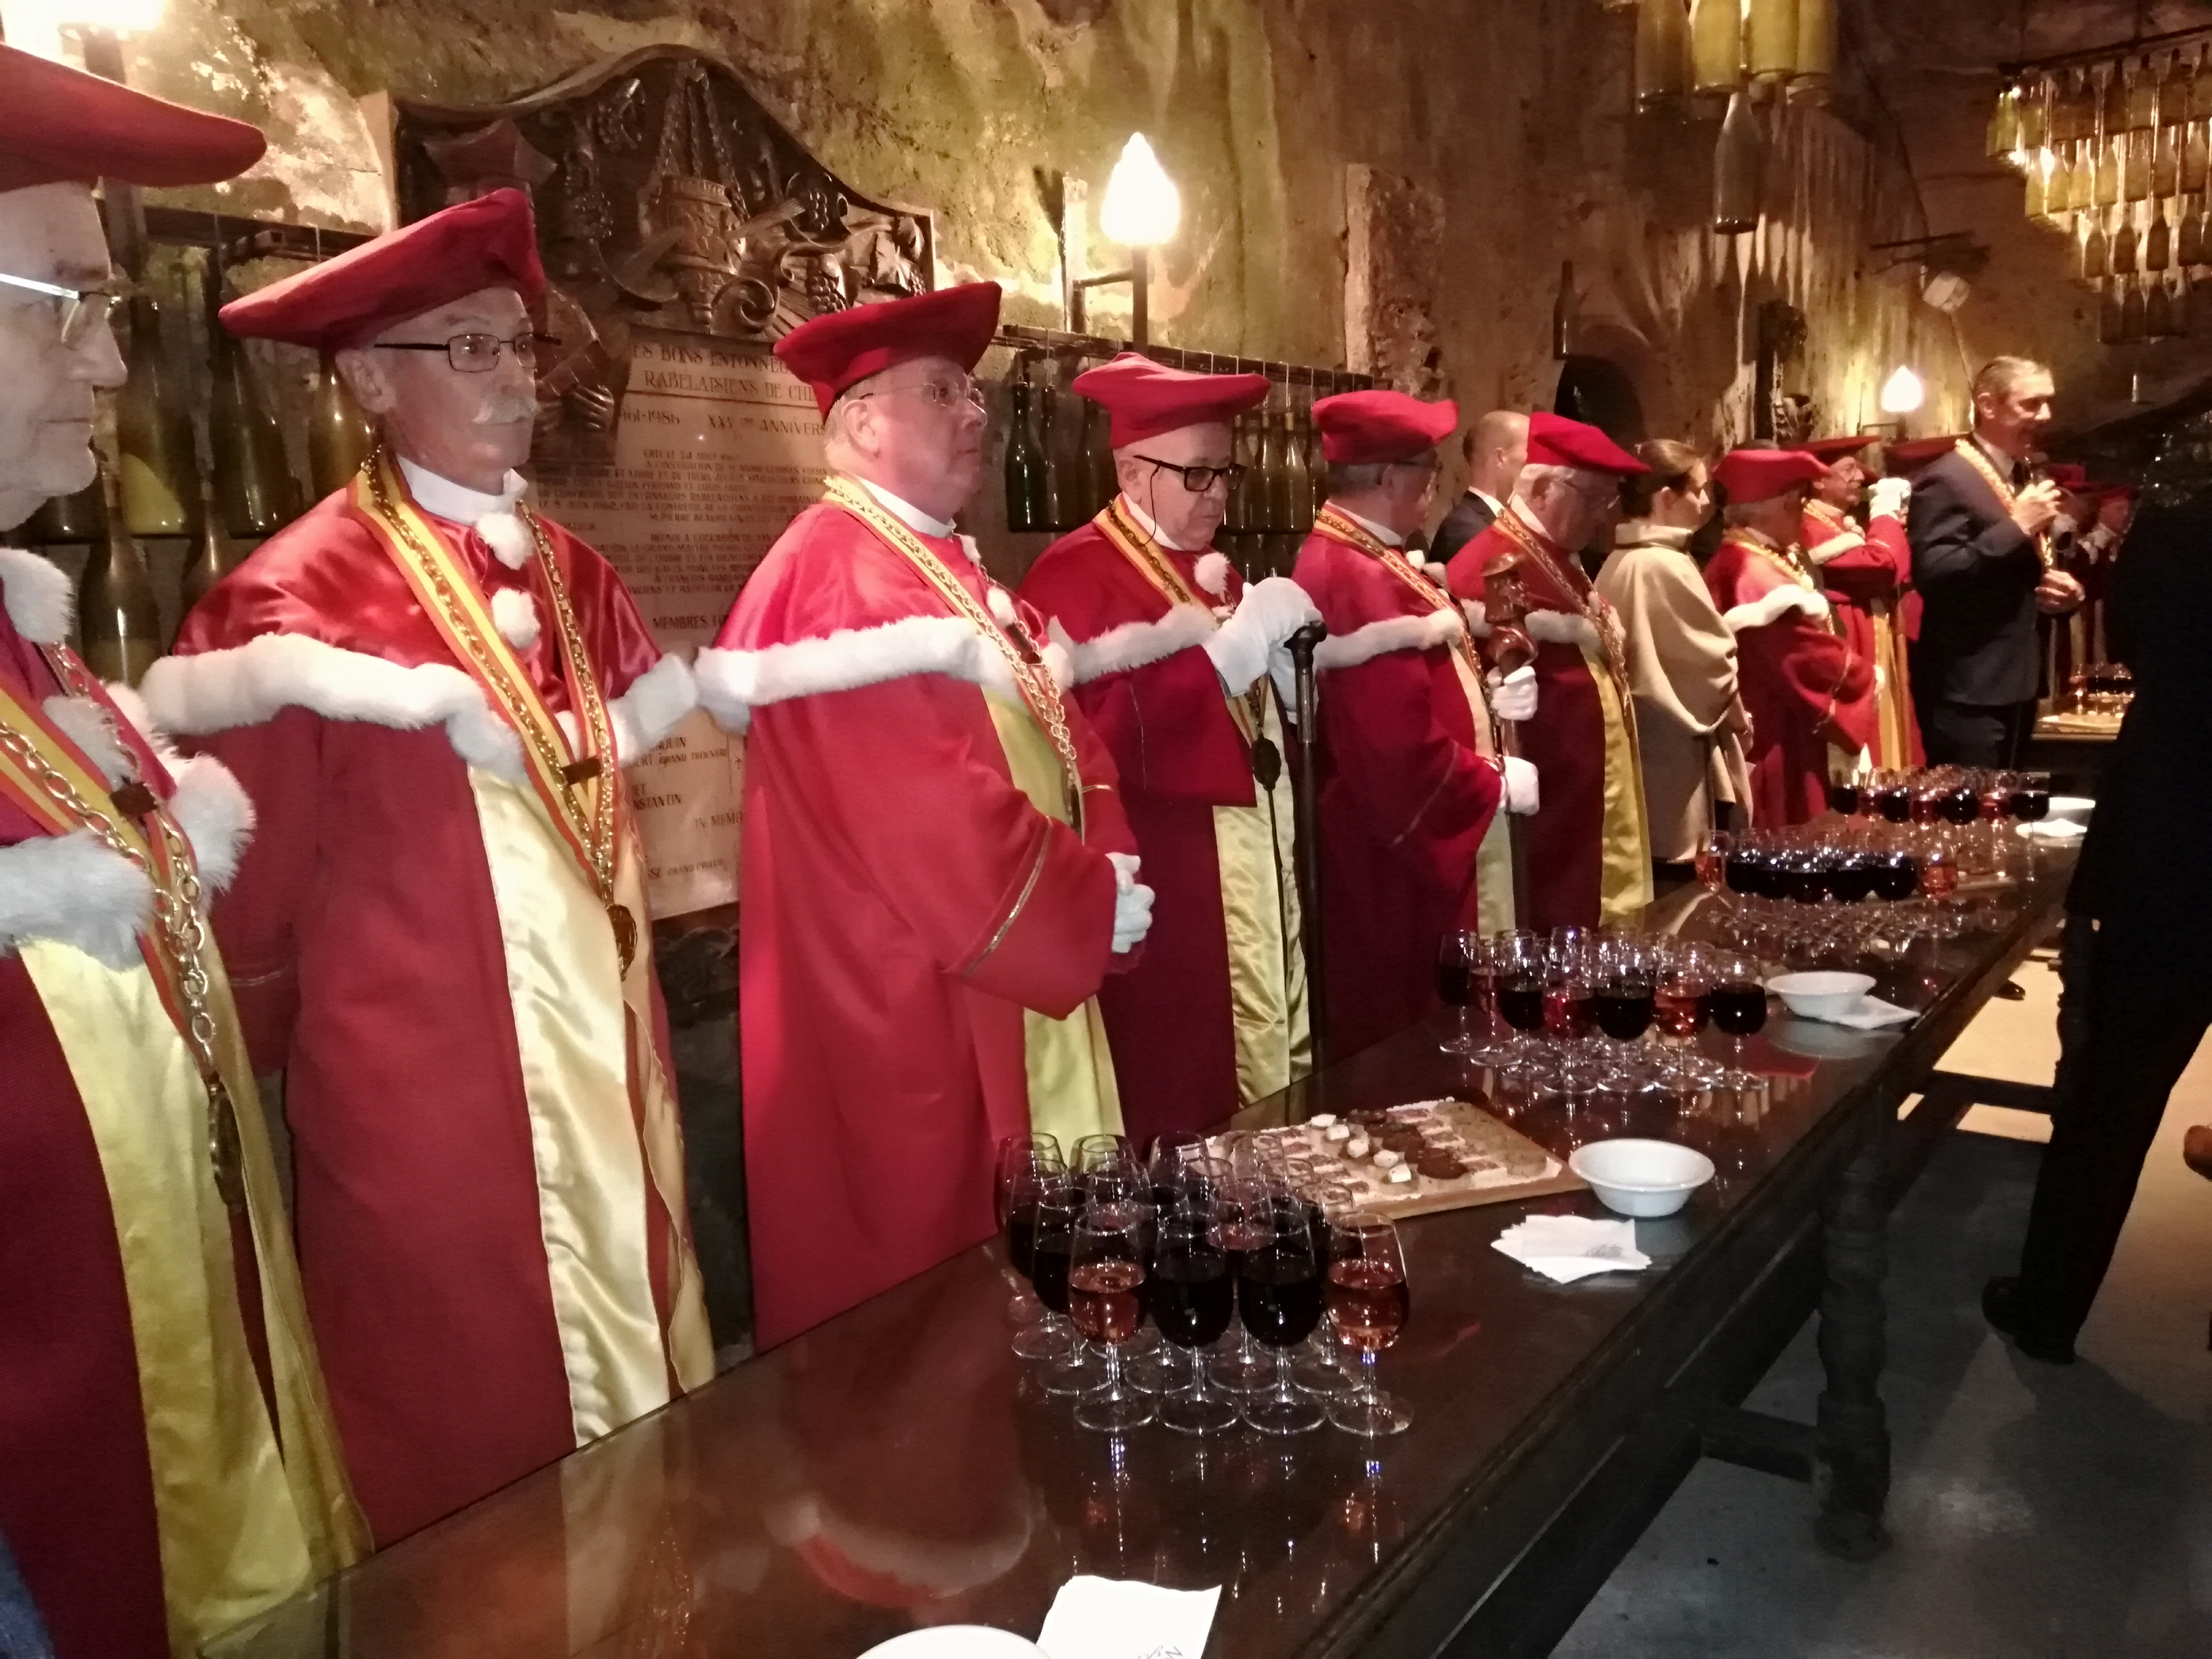 Red robes and Chinon wine, in a cave